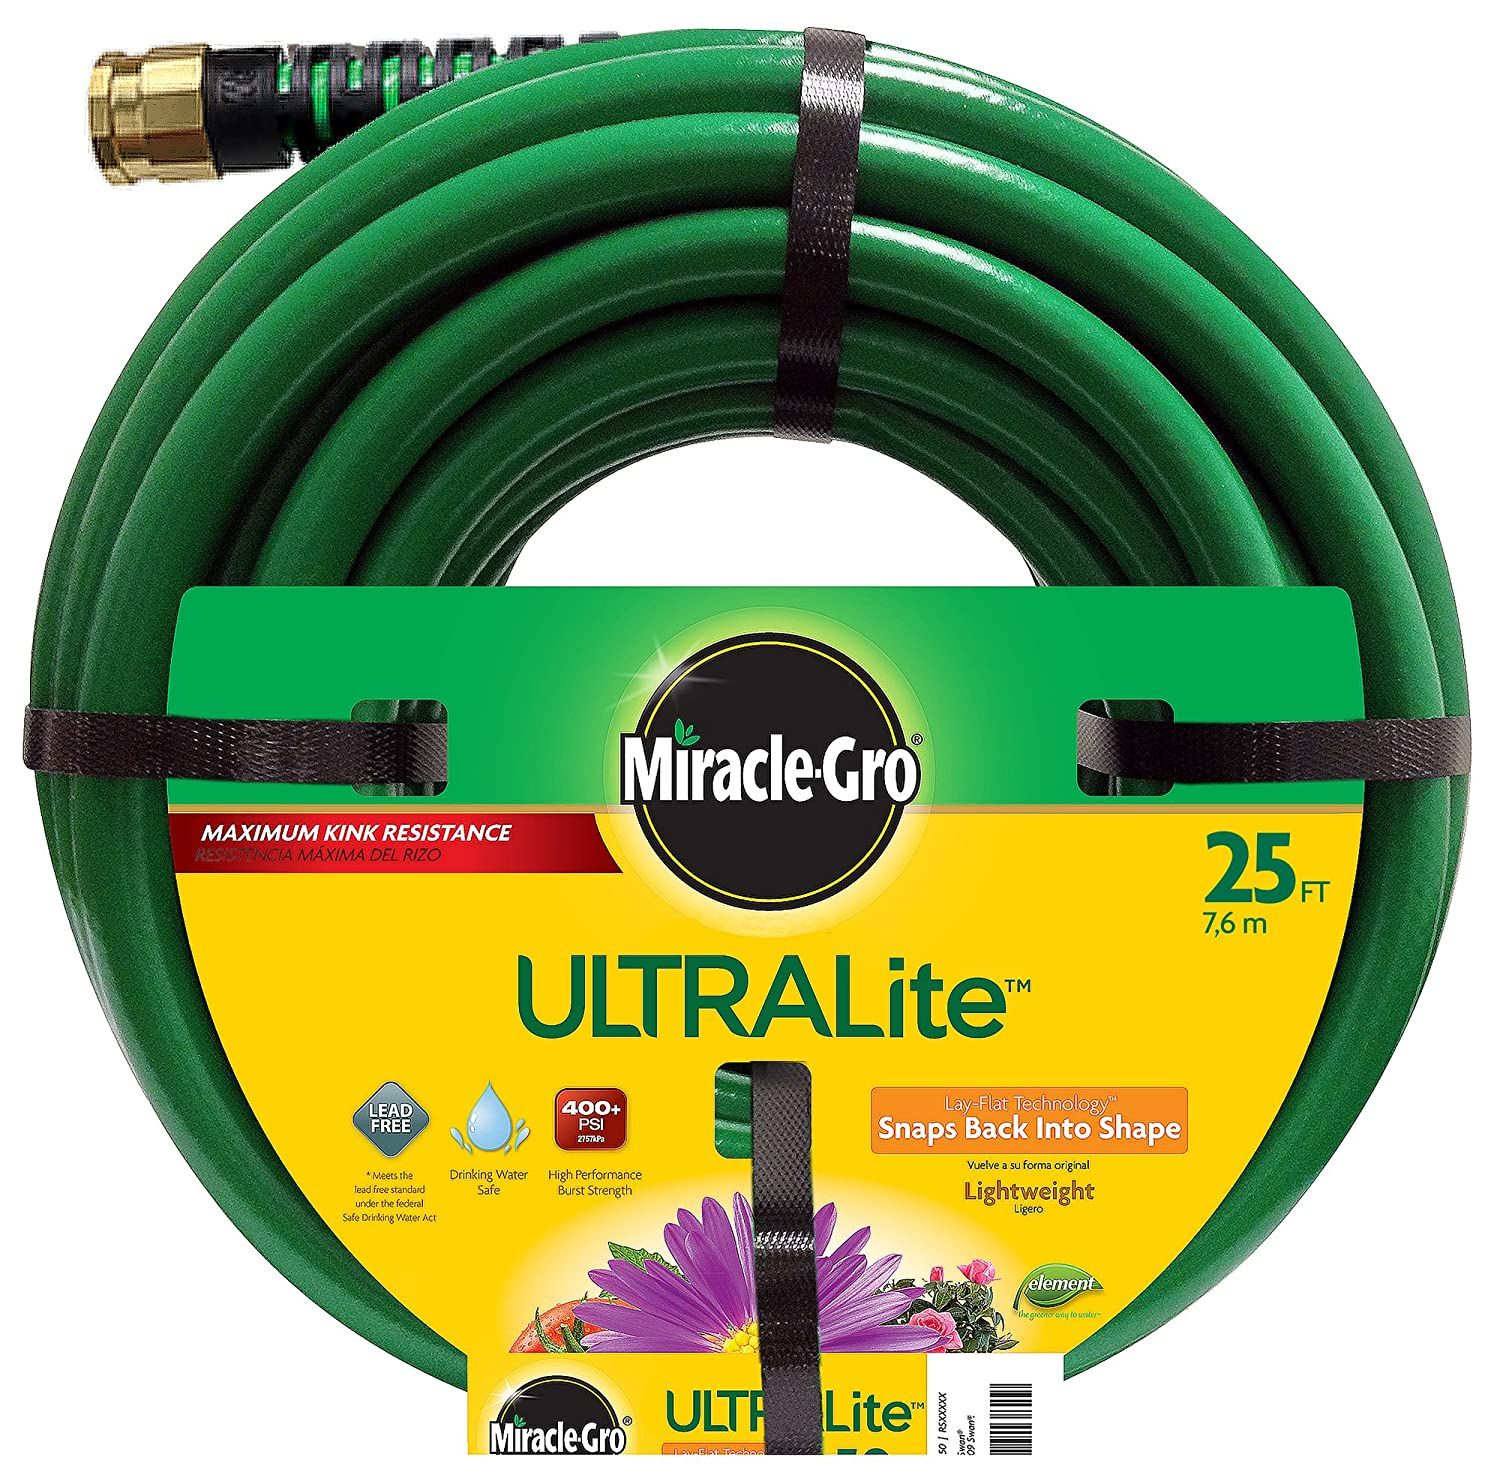 Miracle Gro Ultra Lite Hose, 25-Feet